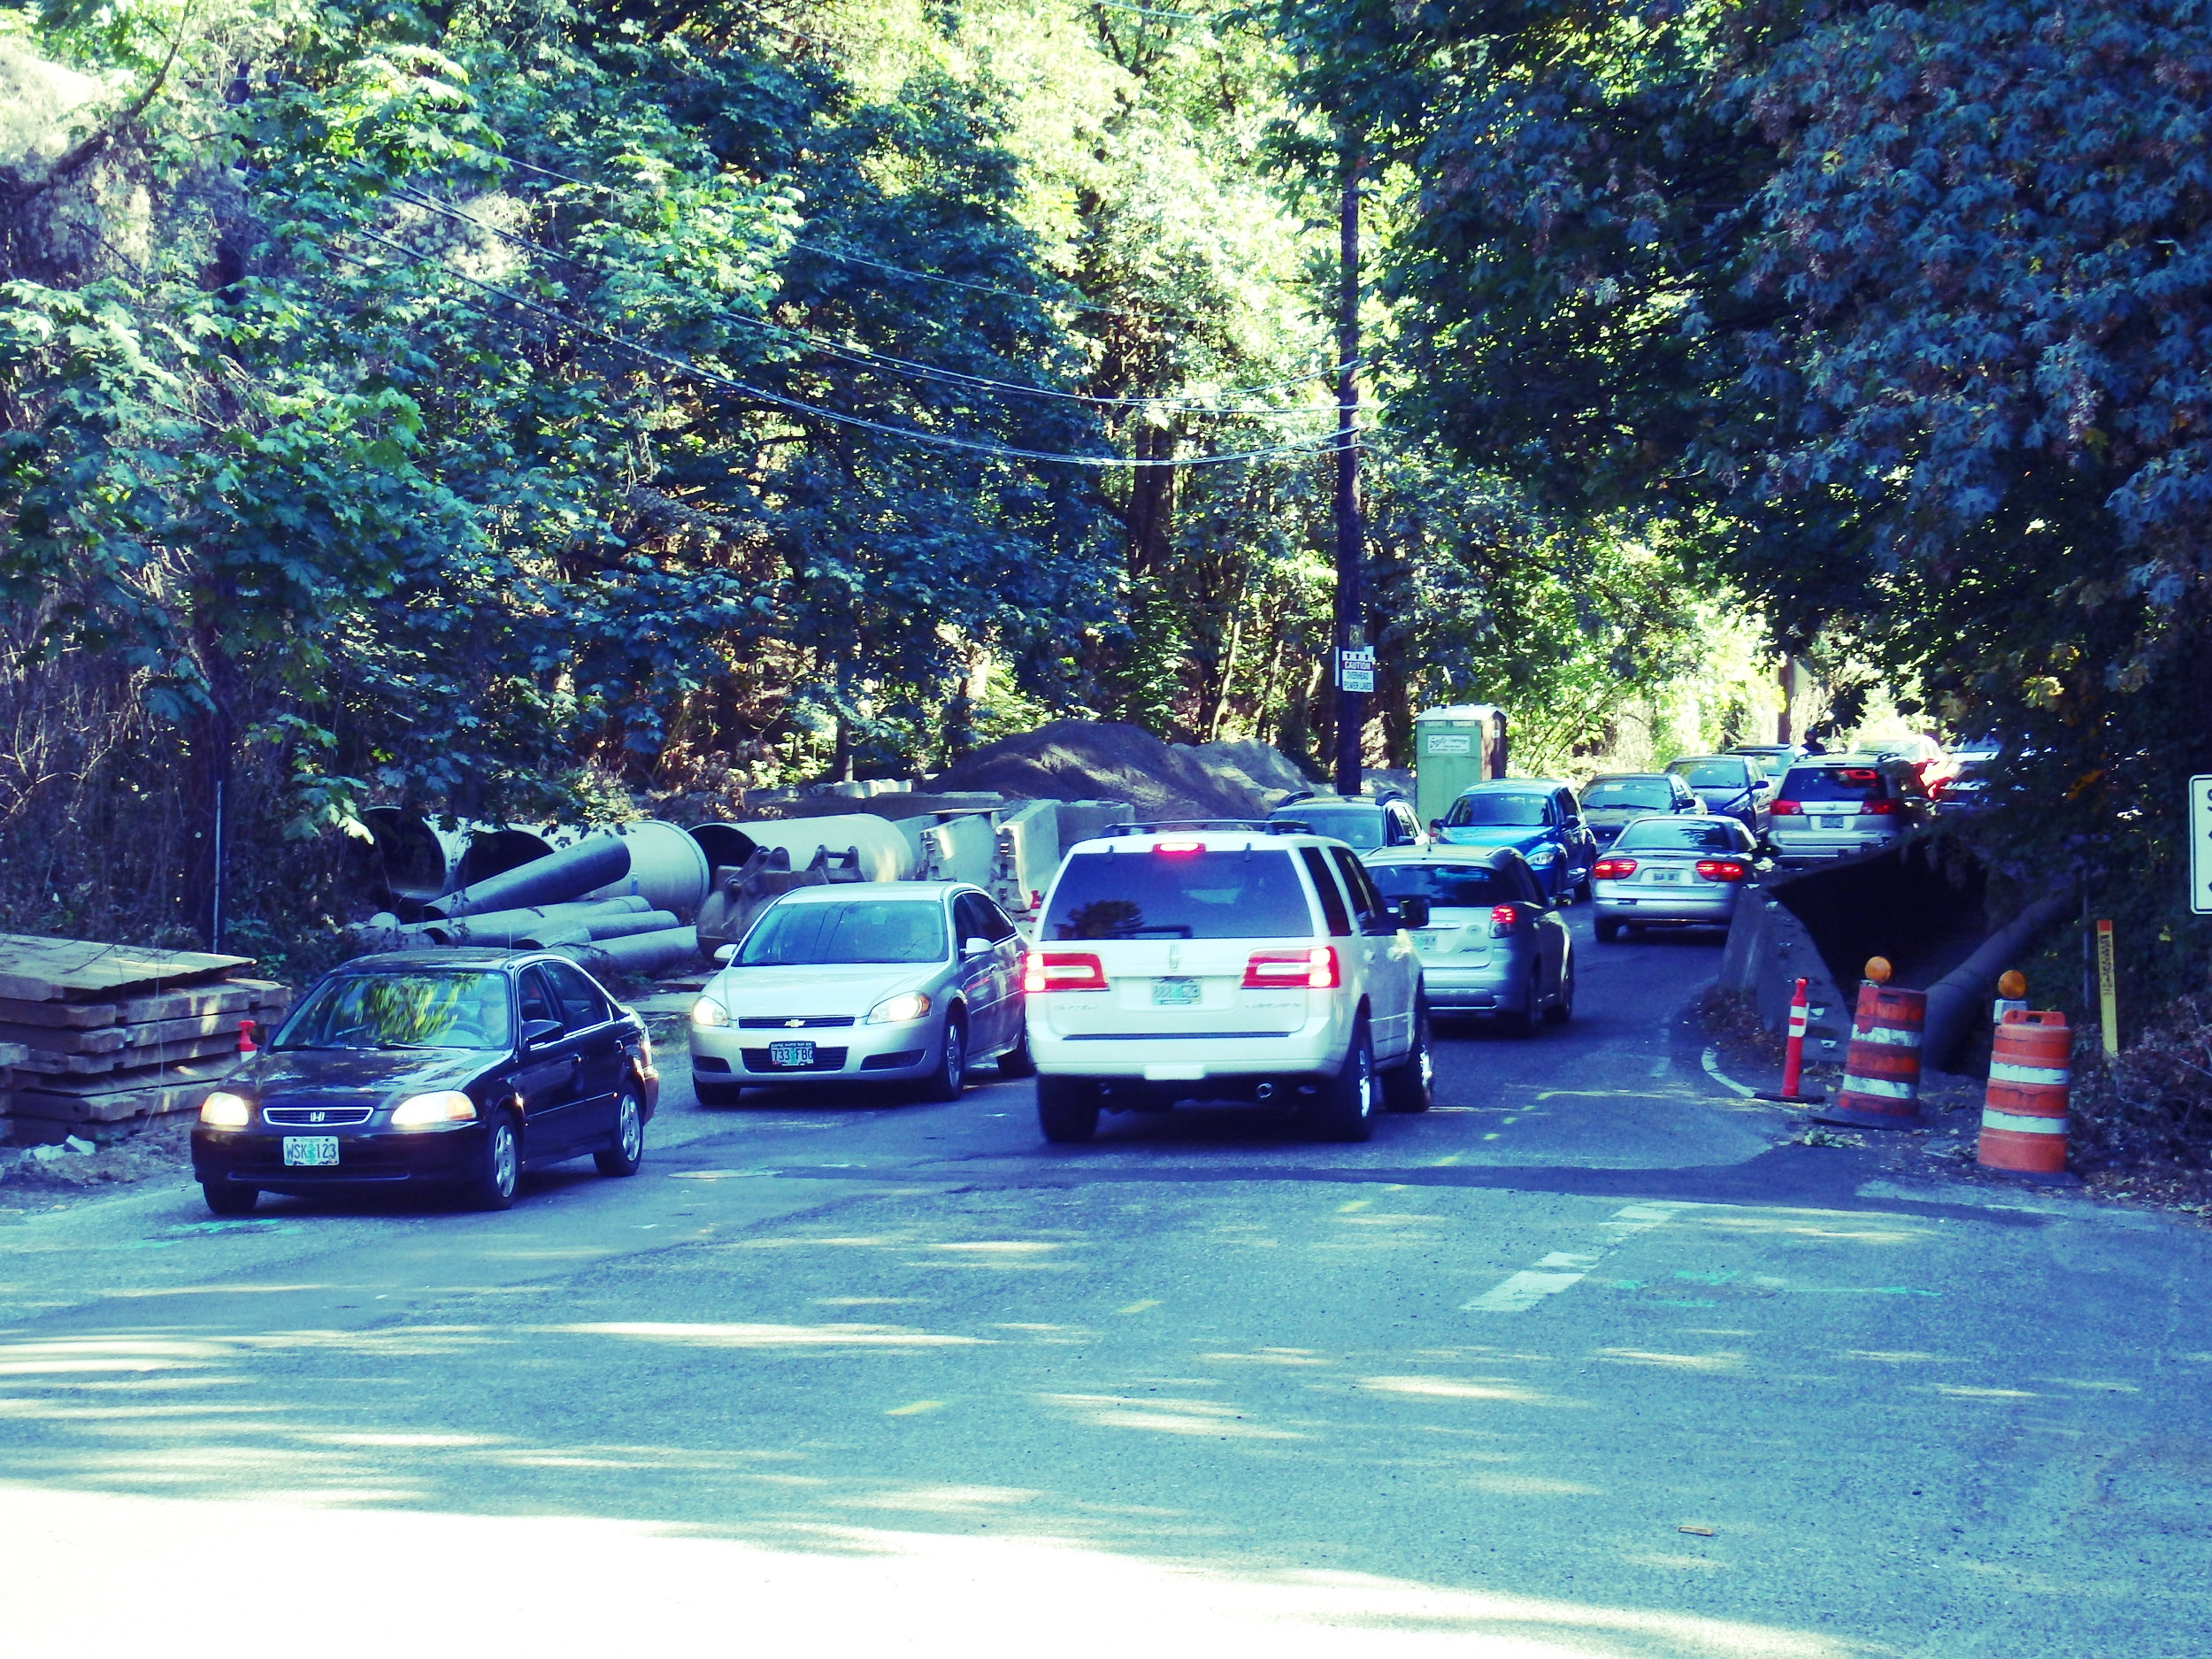 Typical traffic at Taylors Ferry and Fulton Park